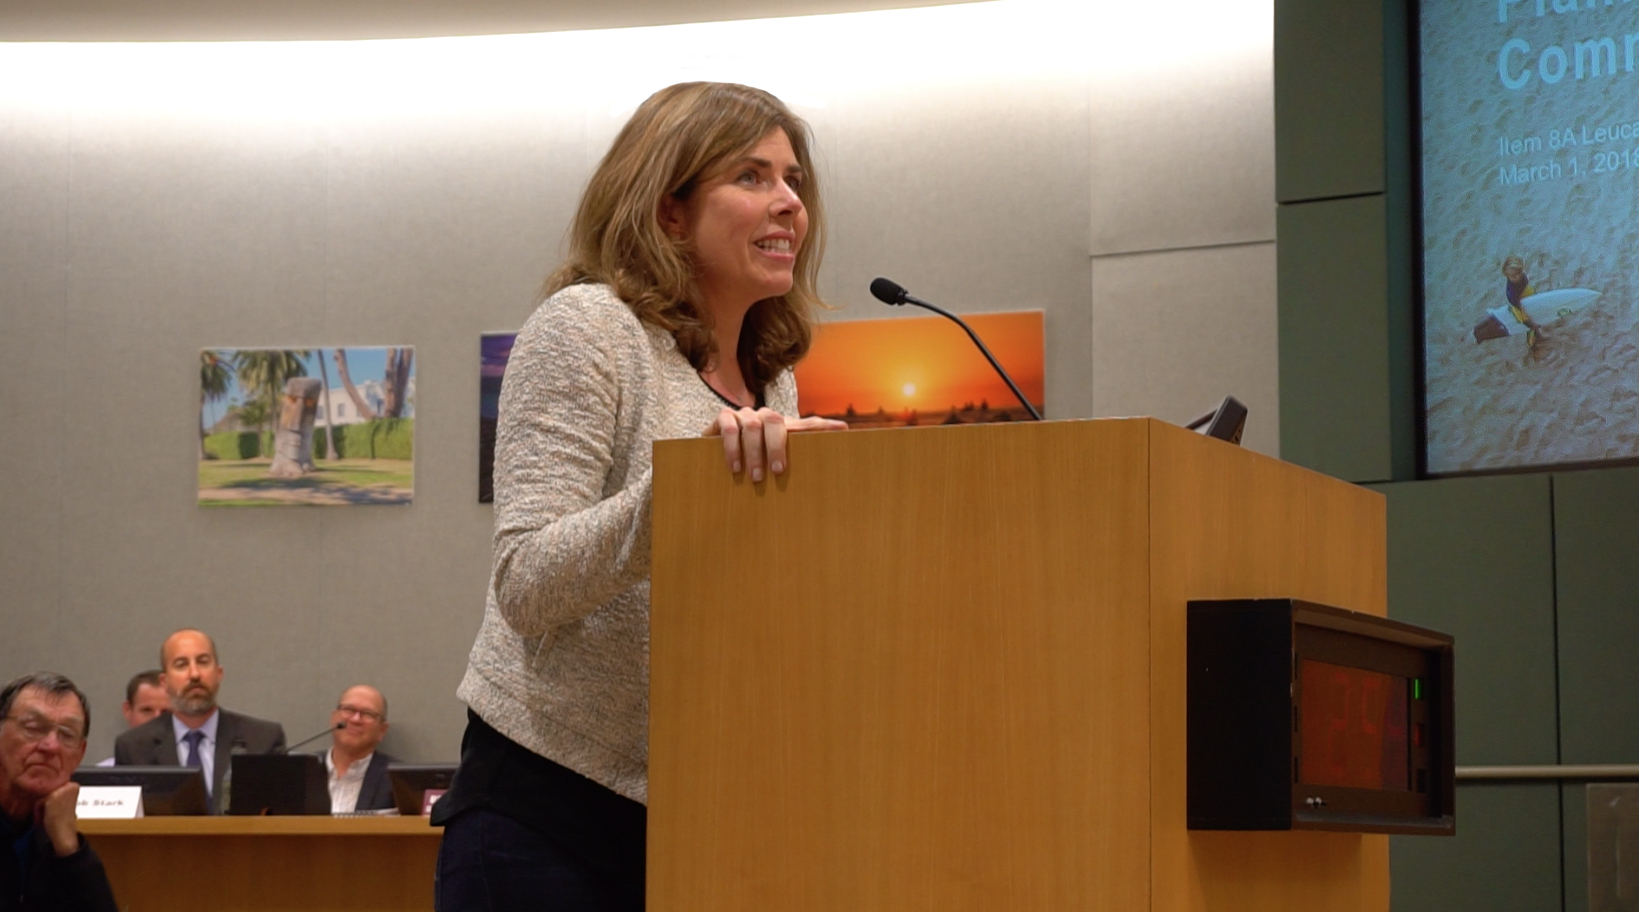 Tammy at the encinitas city planning commission